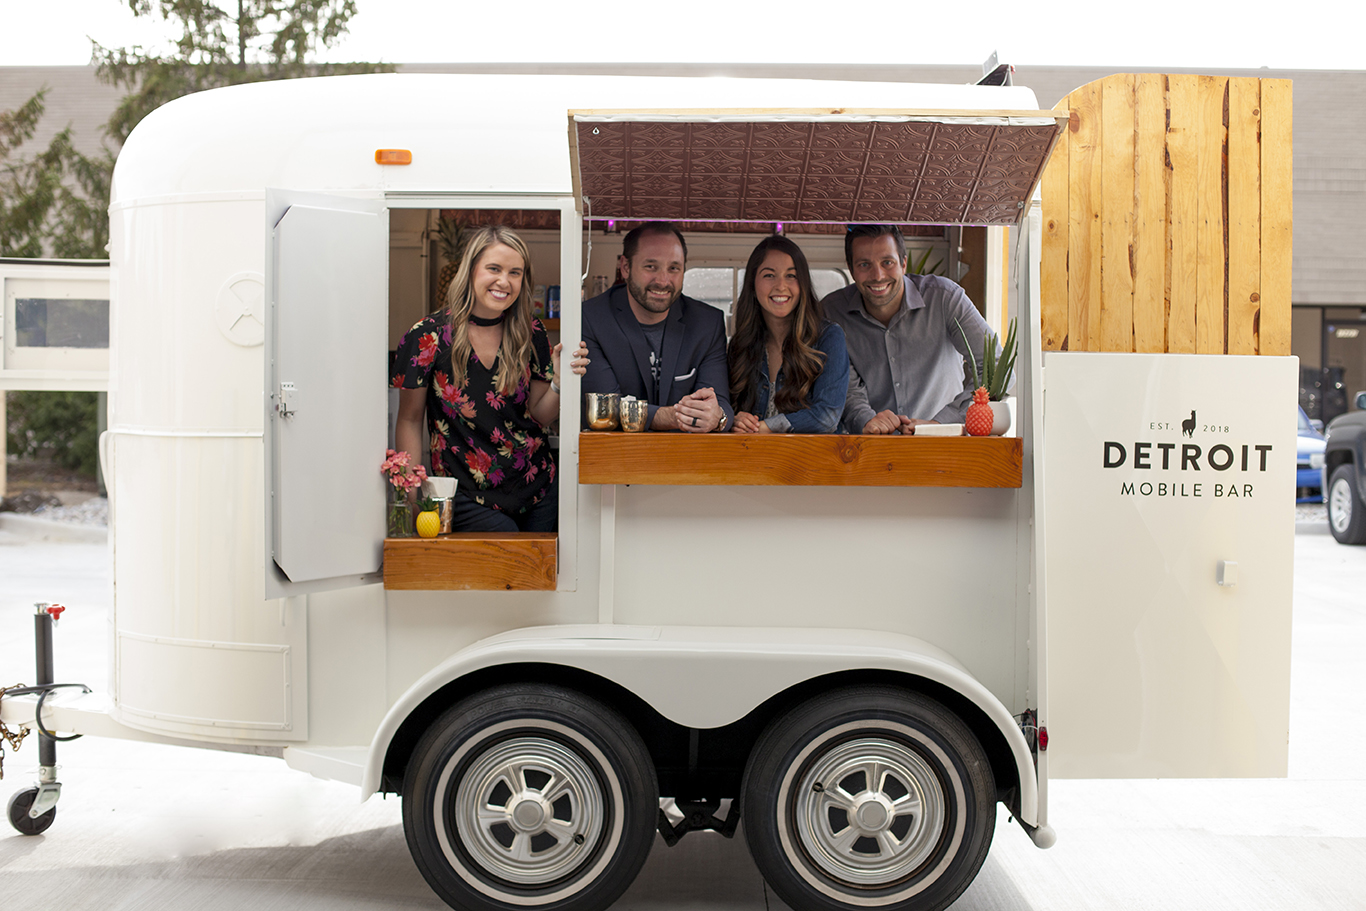 Detroit Mobile Bar at a Launch Party